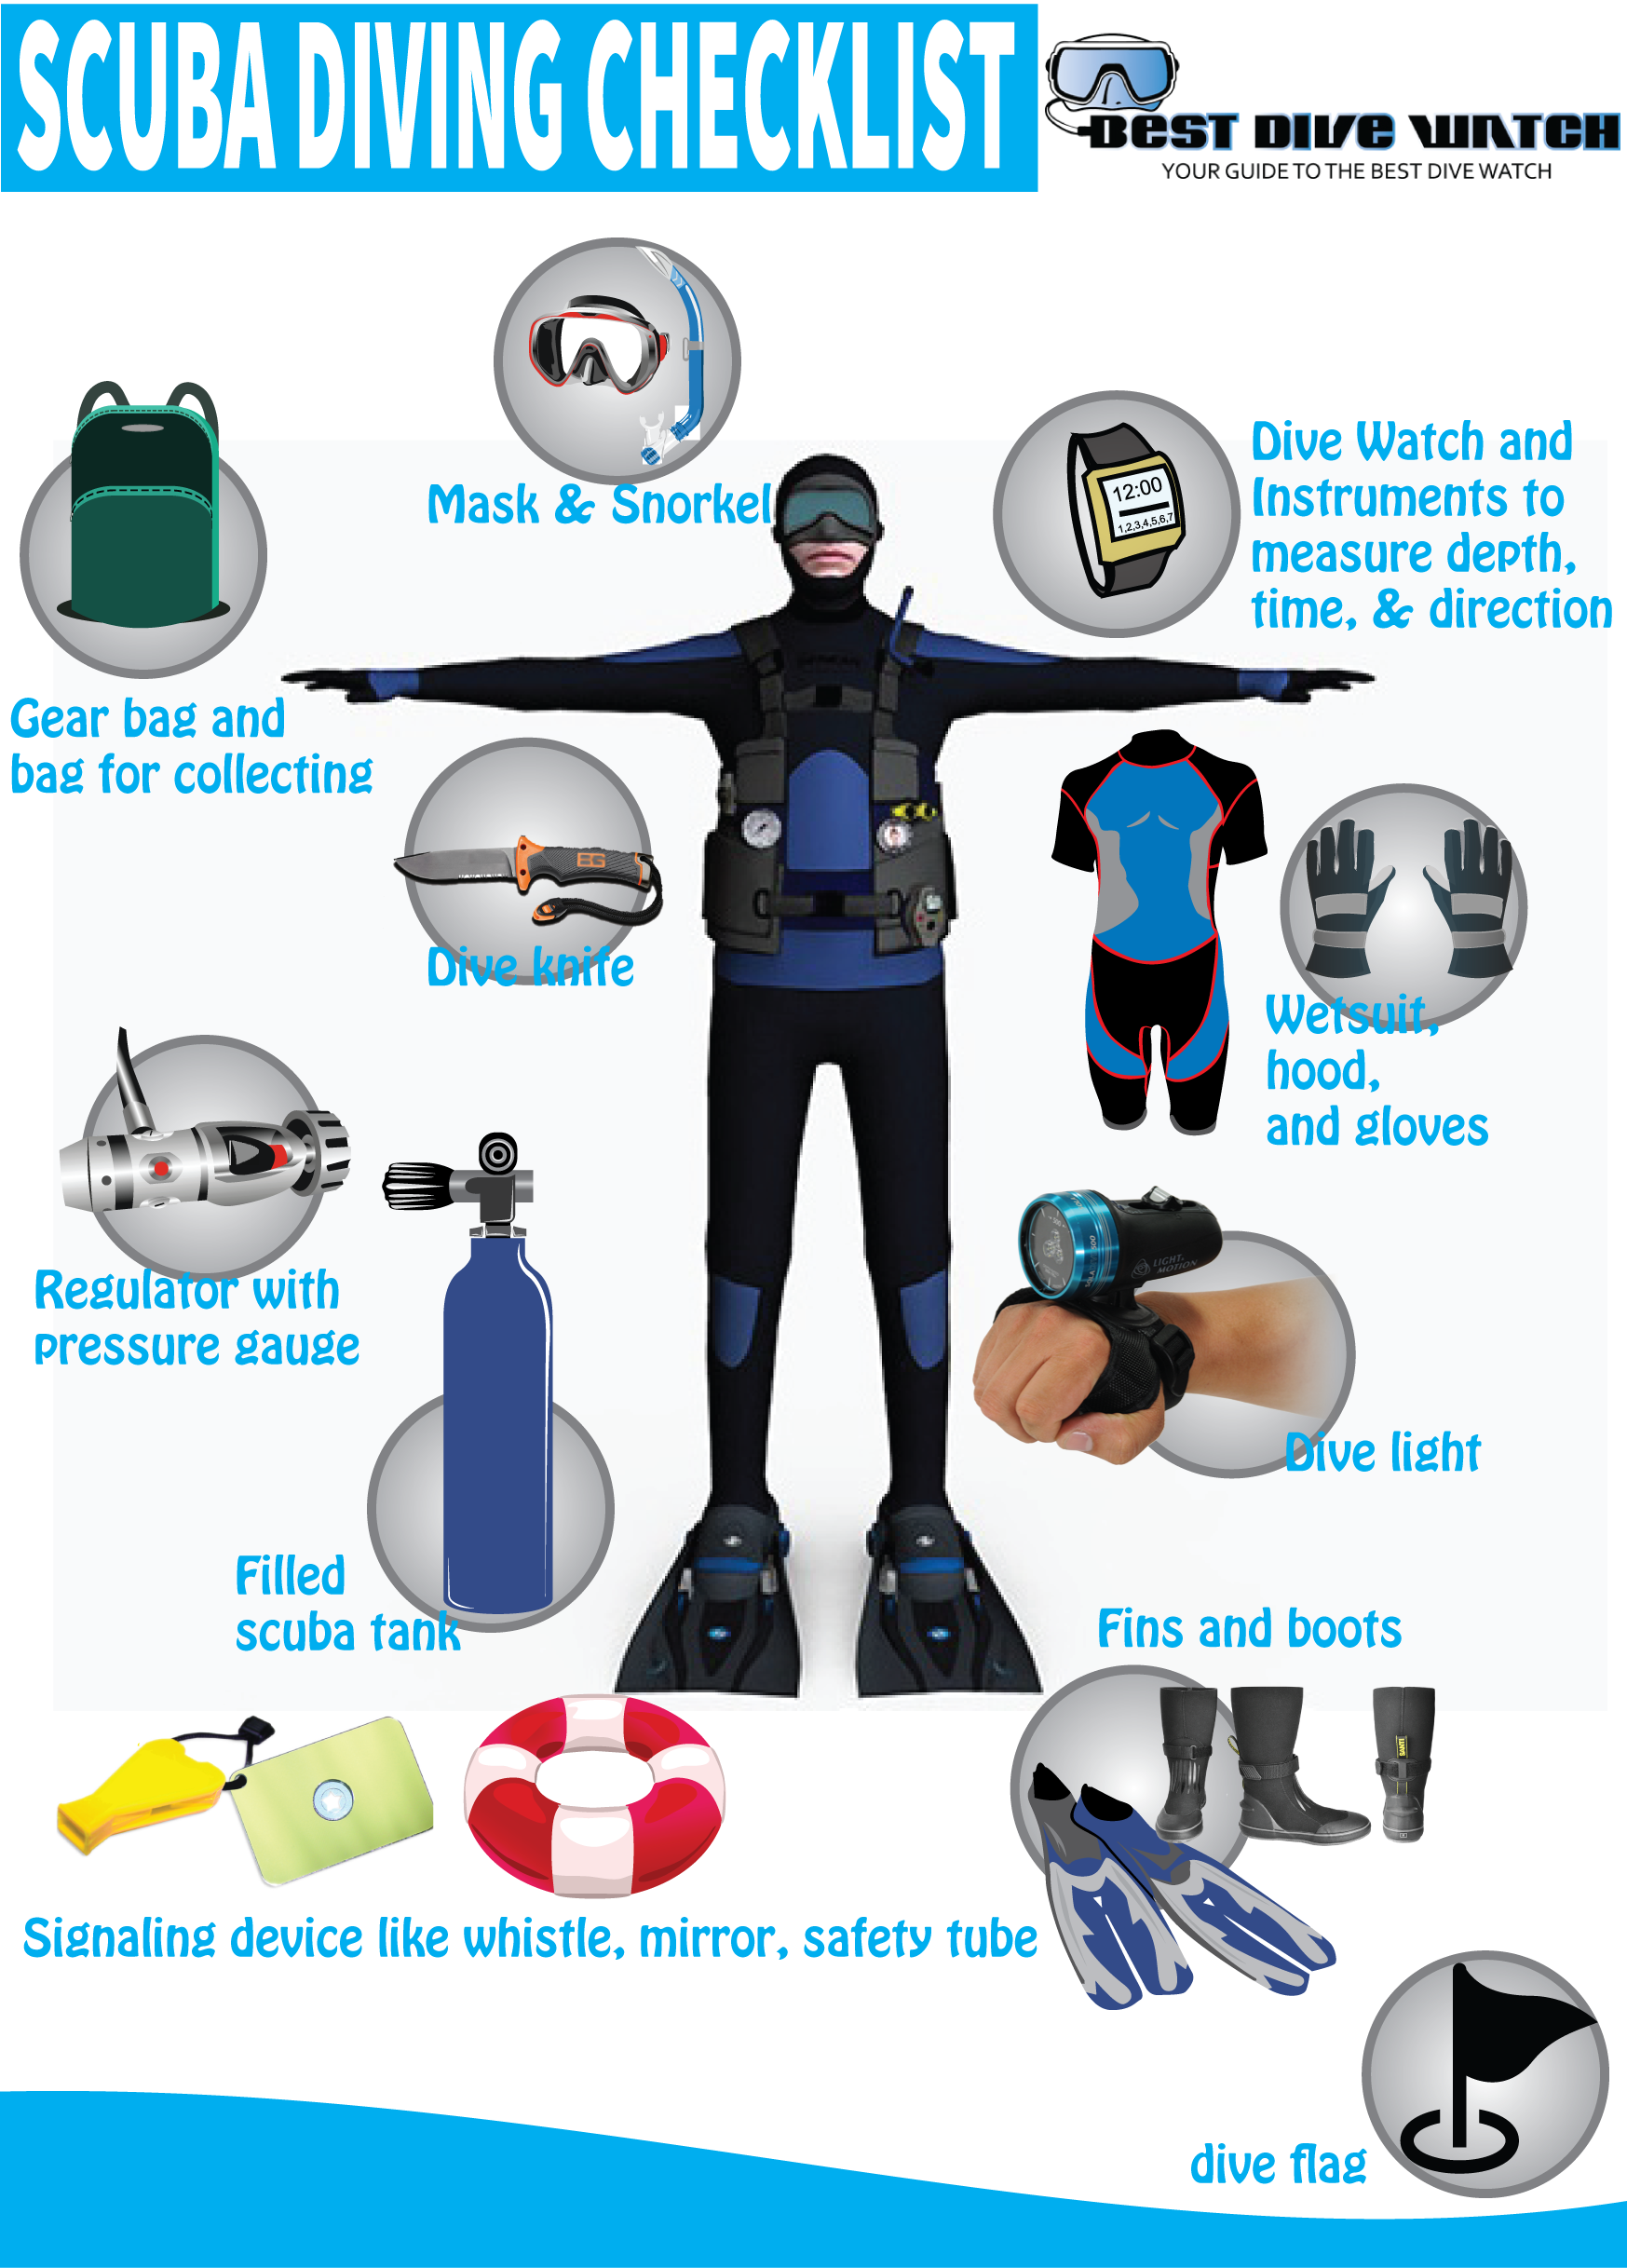 diving equipment diagram labeled sclerenchyma cells diagram labeled scuba equipment checklist, scuba diving gear, scuba diving ... #9